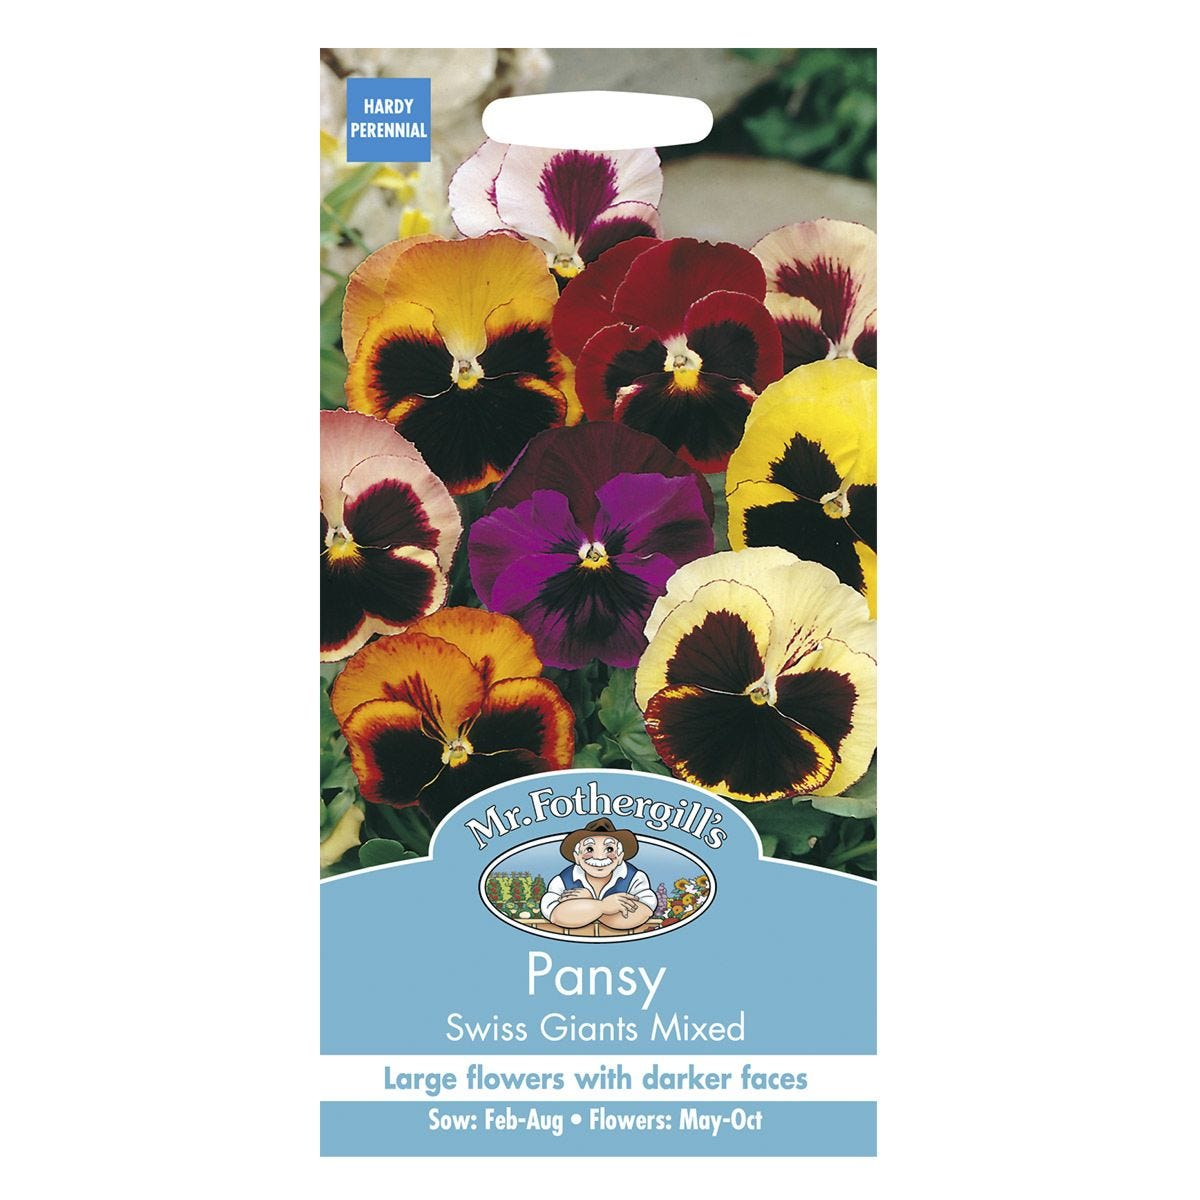 Mr Fothergill's Pansy Swiss Giants Mixed Seeds